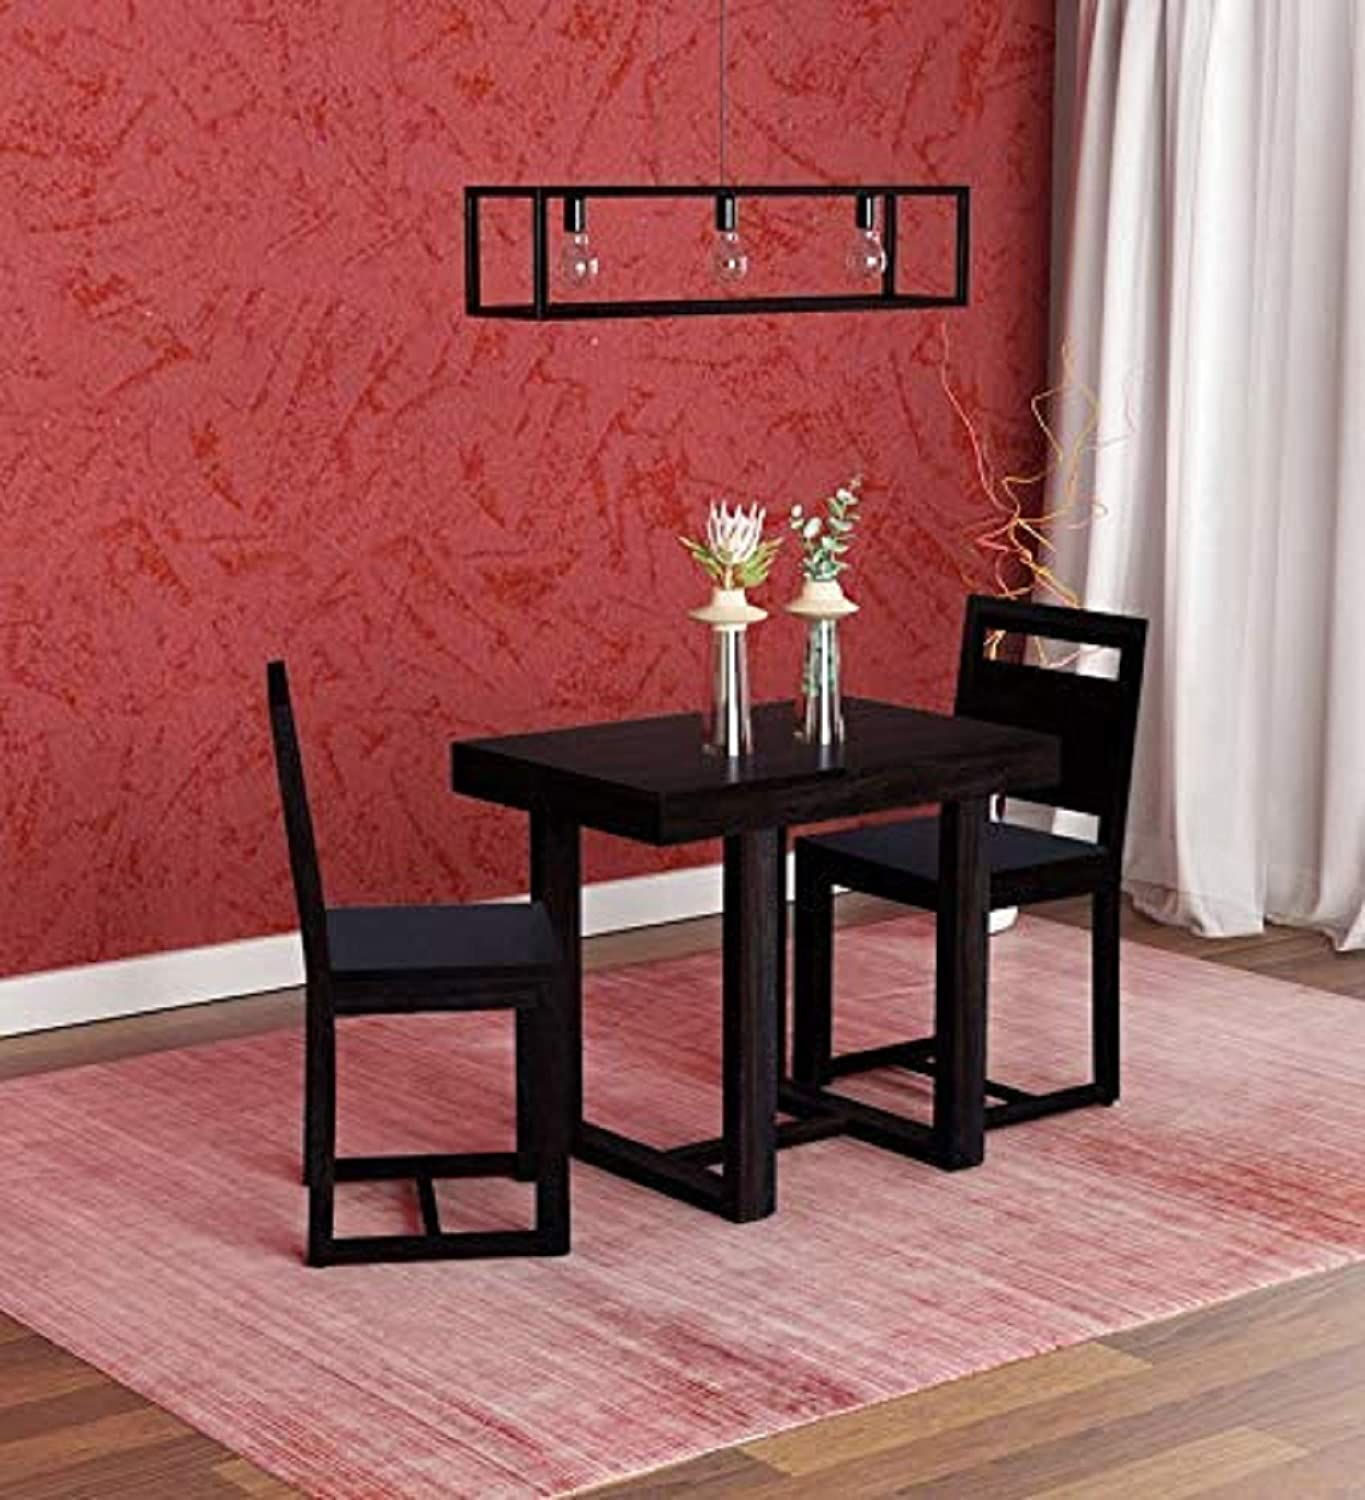 Tg Furniture Solid Wood 2 Seater Dining Table Set With 2 Chair For Dining Room Sheesham Wood Black Oak Finish Amazon In Furniture